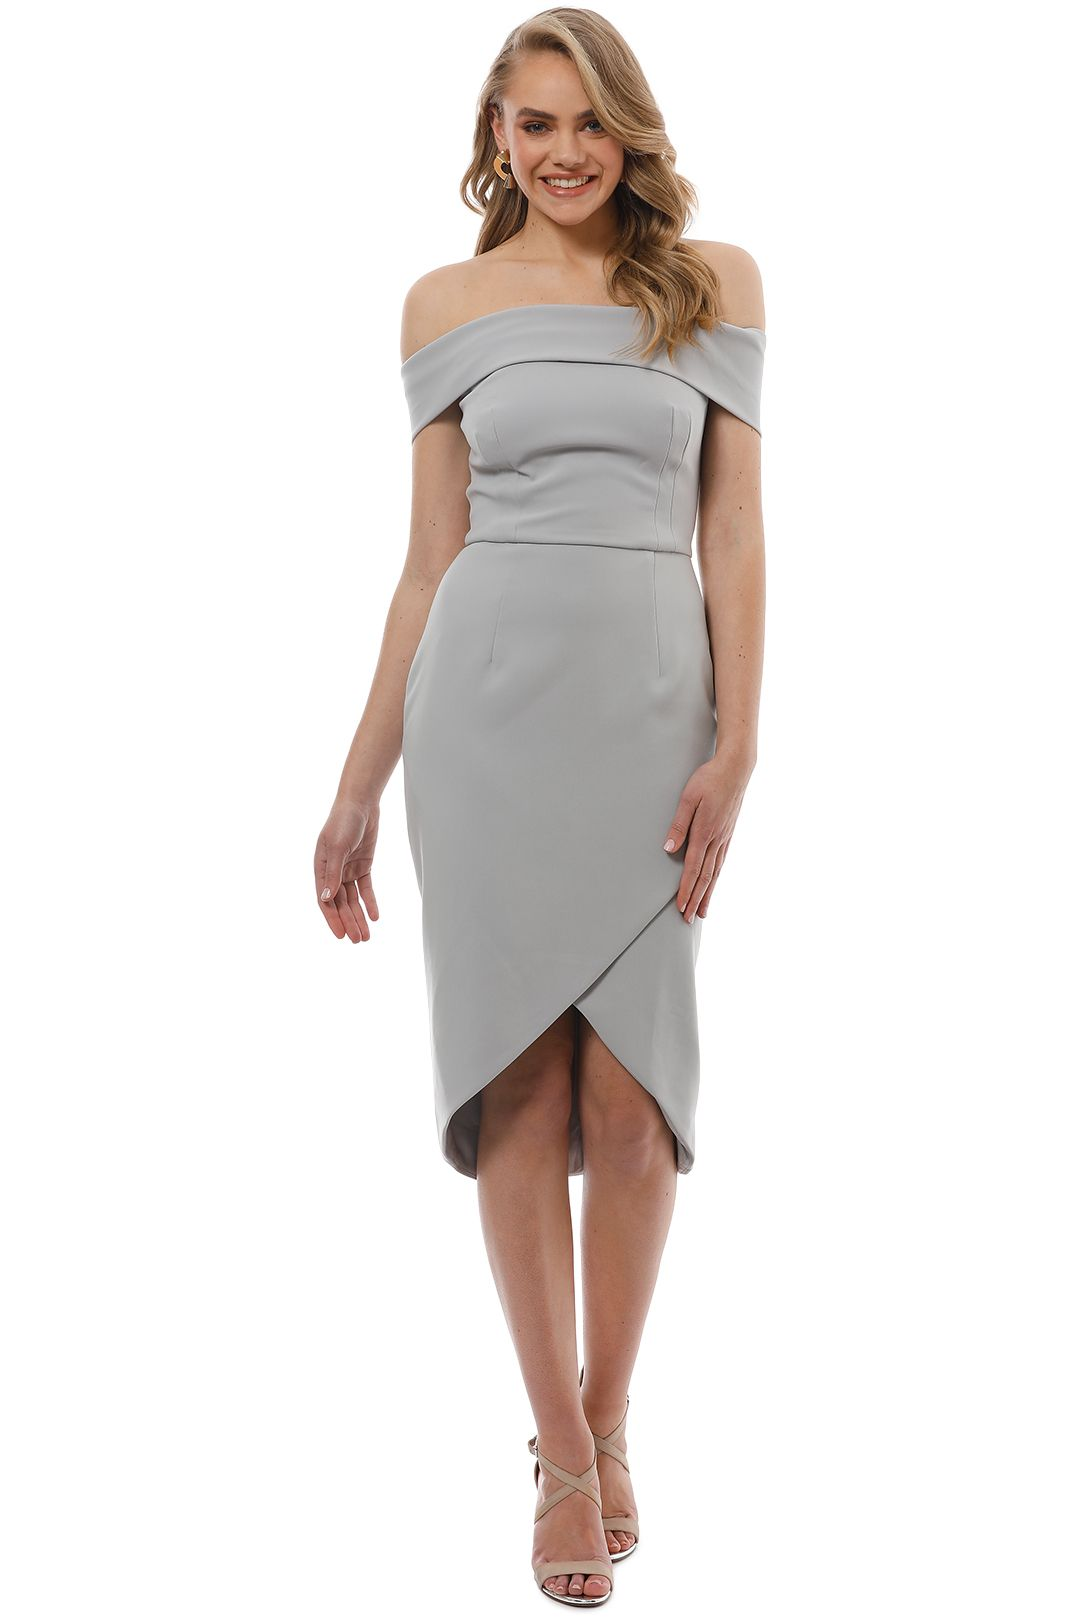 Unspoken - Jamai Short Dress - Dove Grey - Front